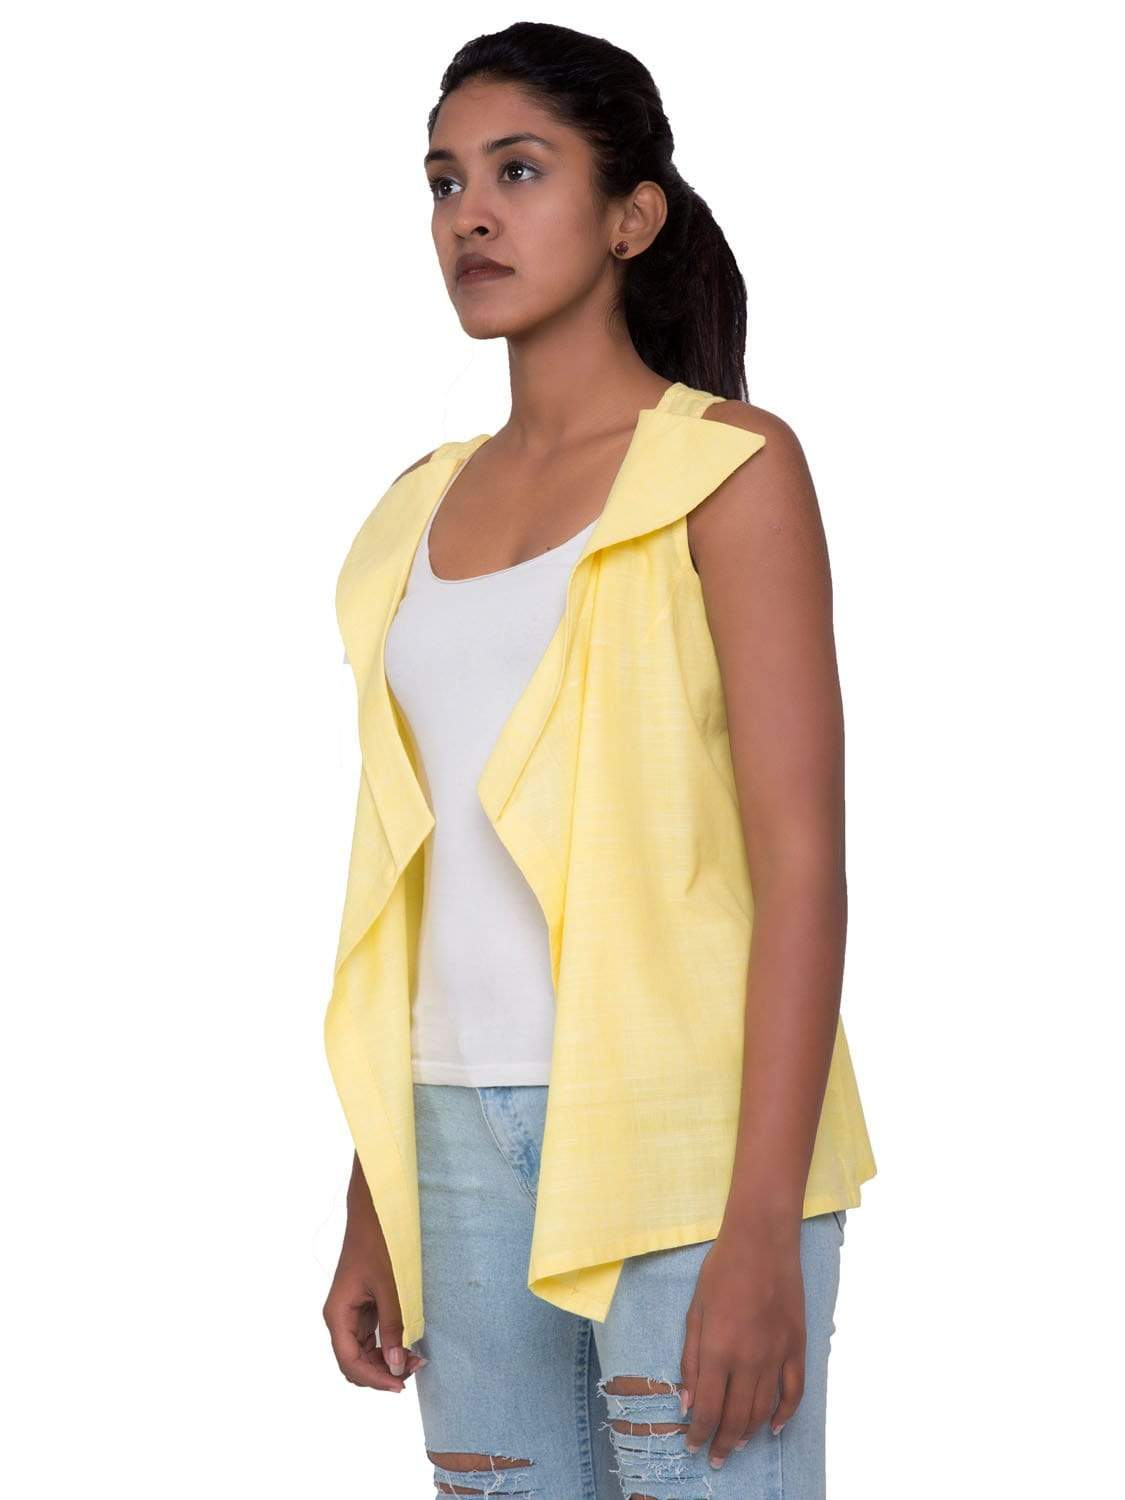 Yellow PikaLove Organic Cotton Sleeve Less Jacket UNC-MB-YL-003